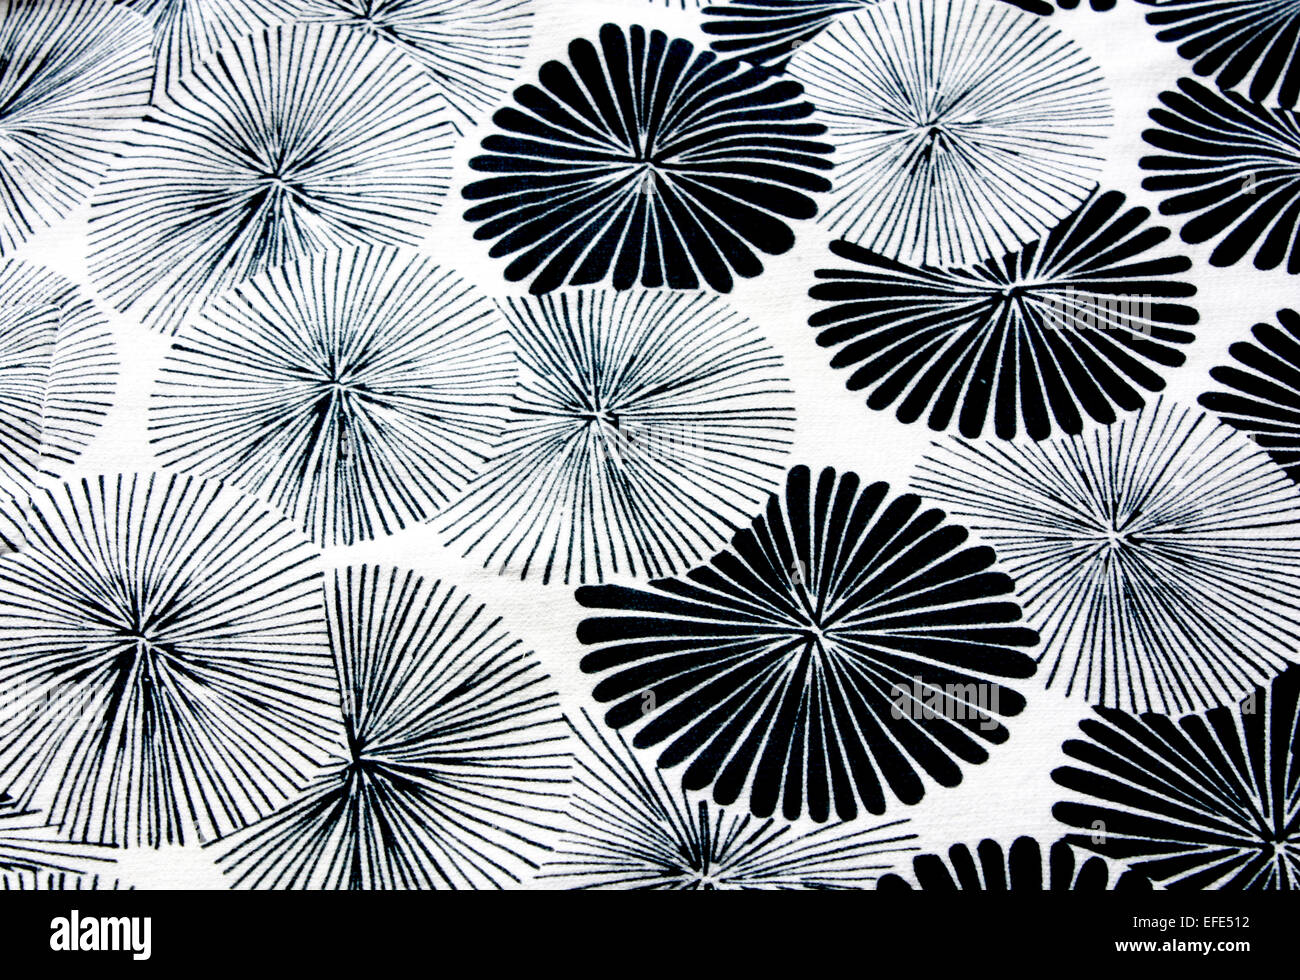 Abstract background of repeating circular flower pattern in black and white - Stock Image